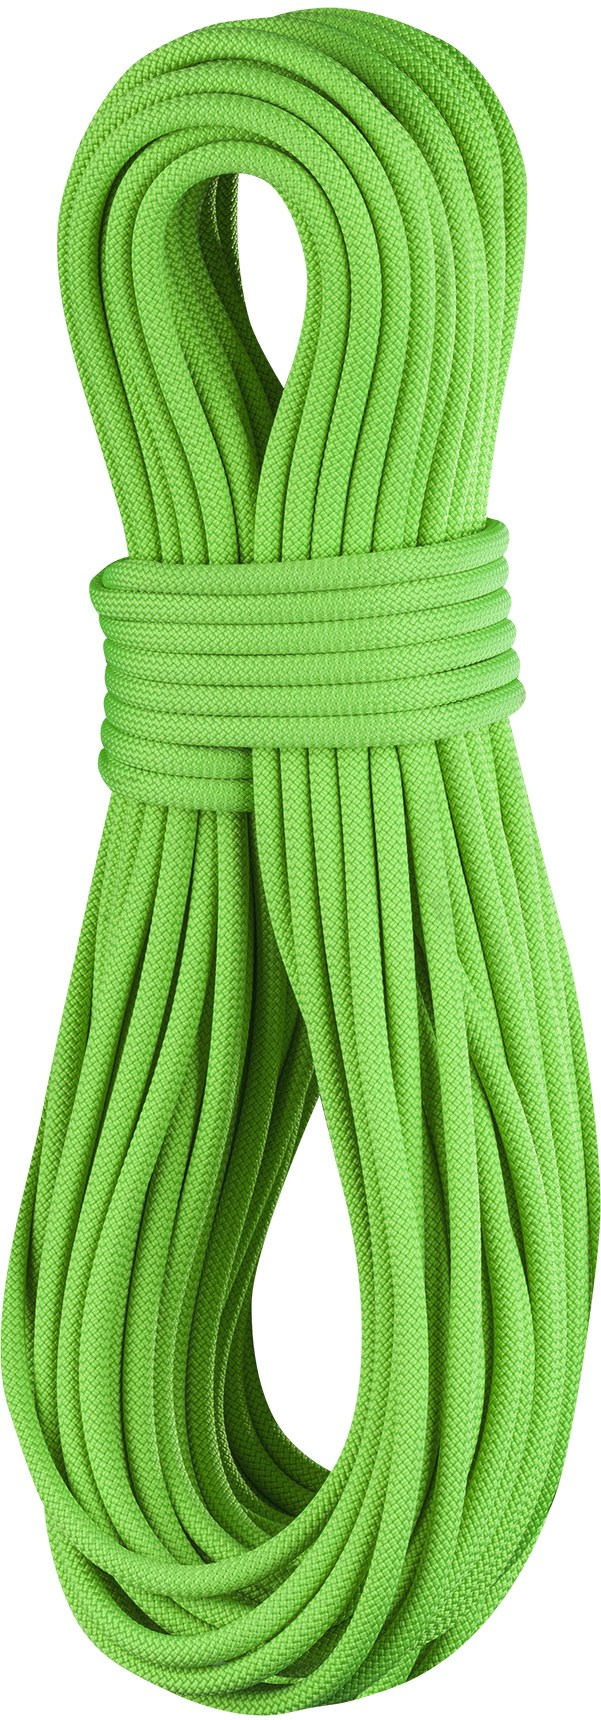 Edelrid Canary Pro 8.6mm x 70m Dry Rope